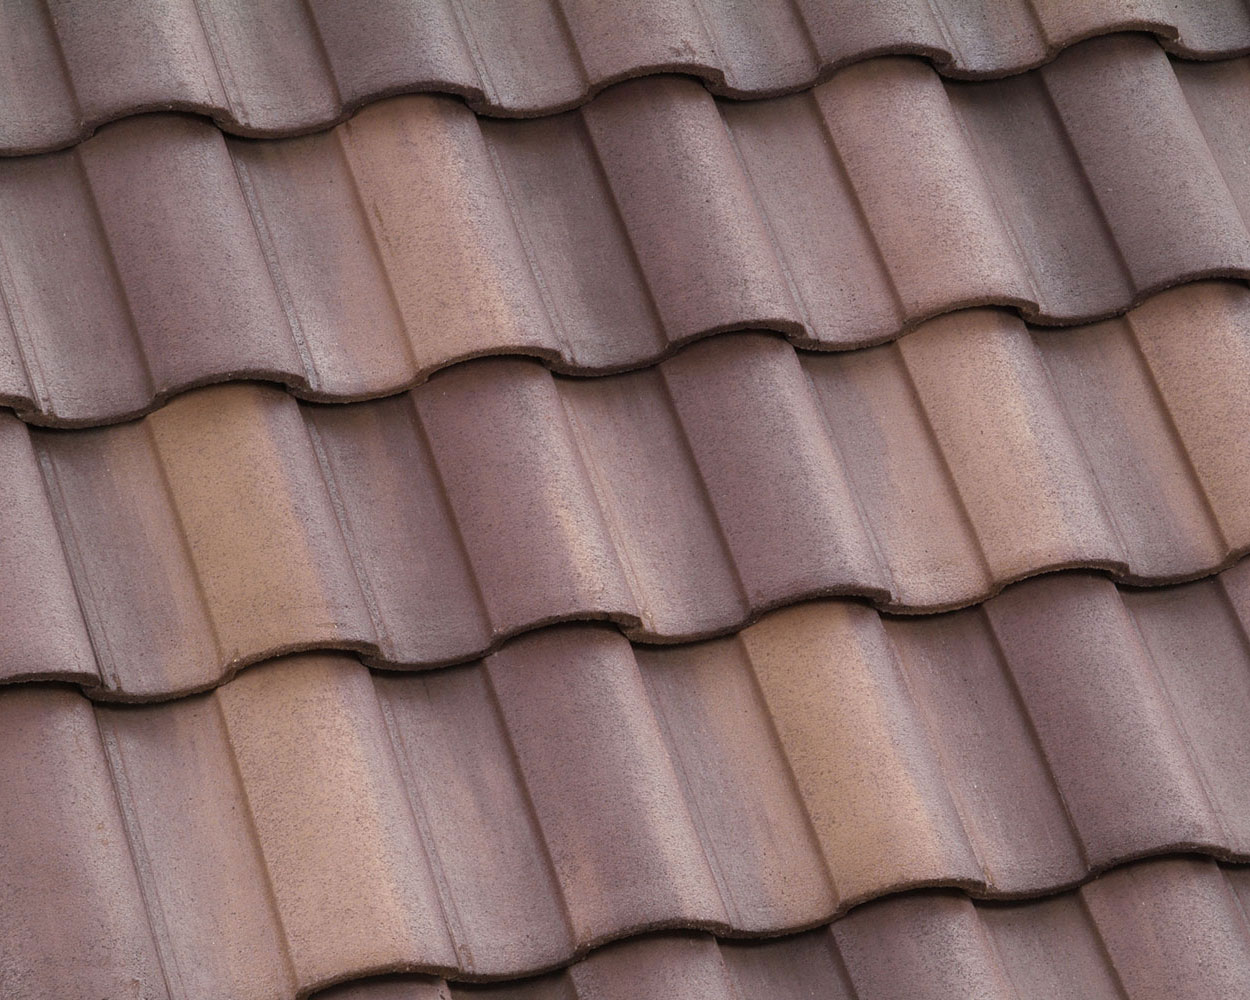 San rafael blend tile roof color swatch